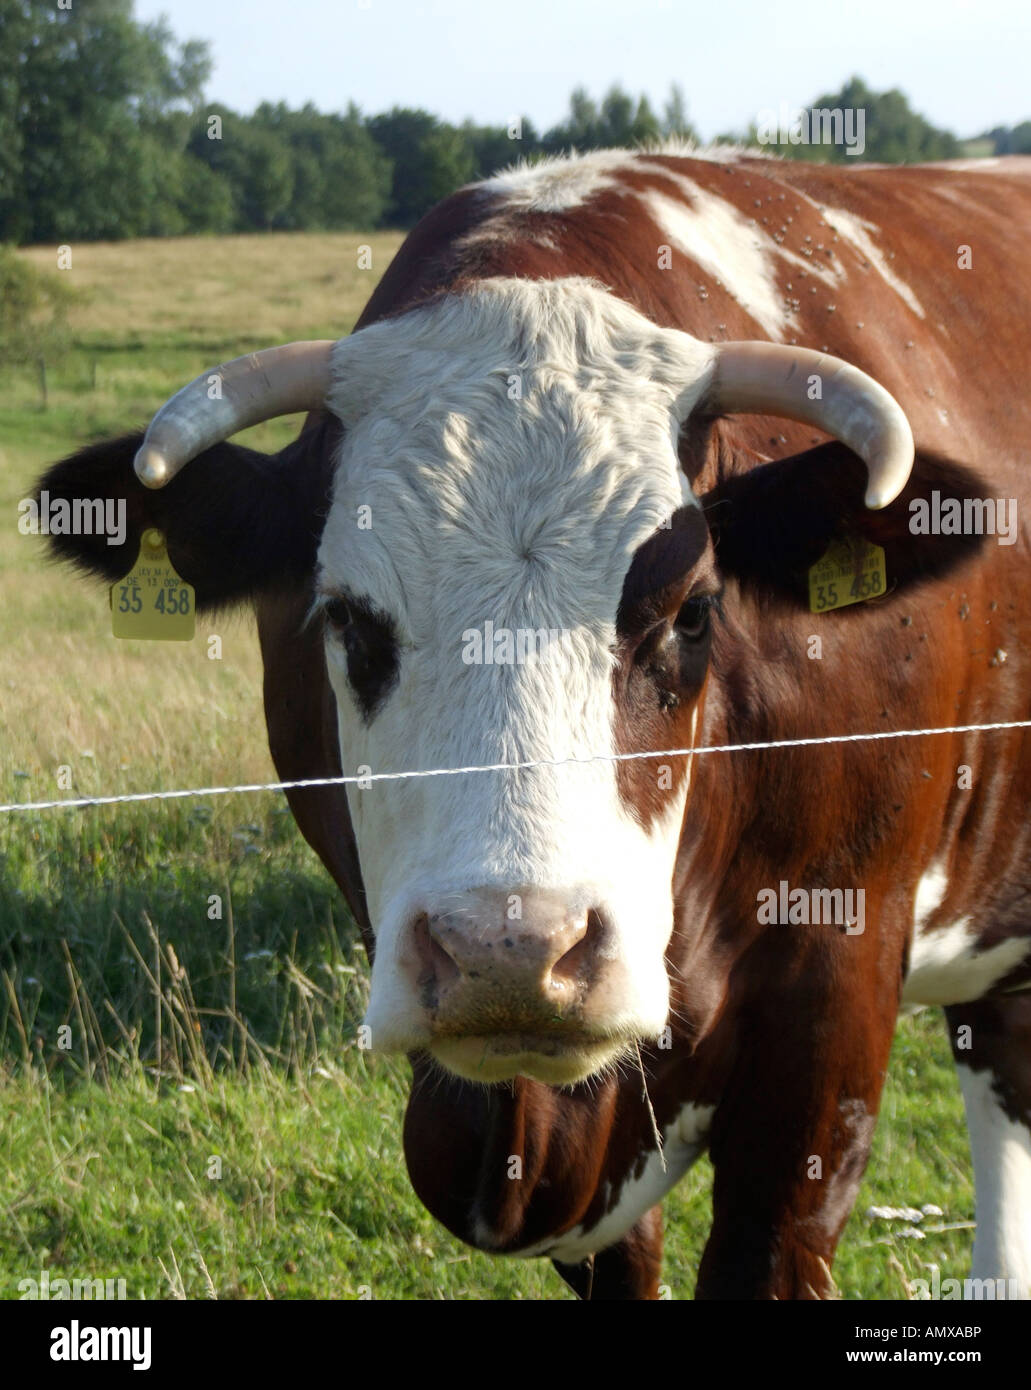 Cow on pasture Stock Photo